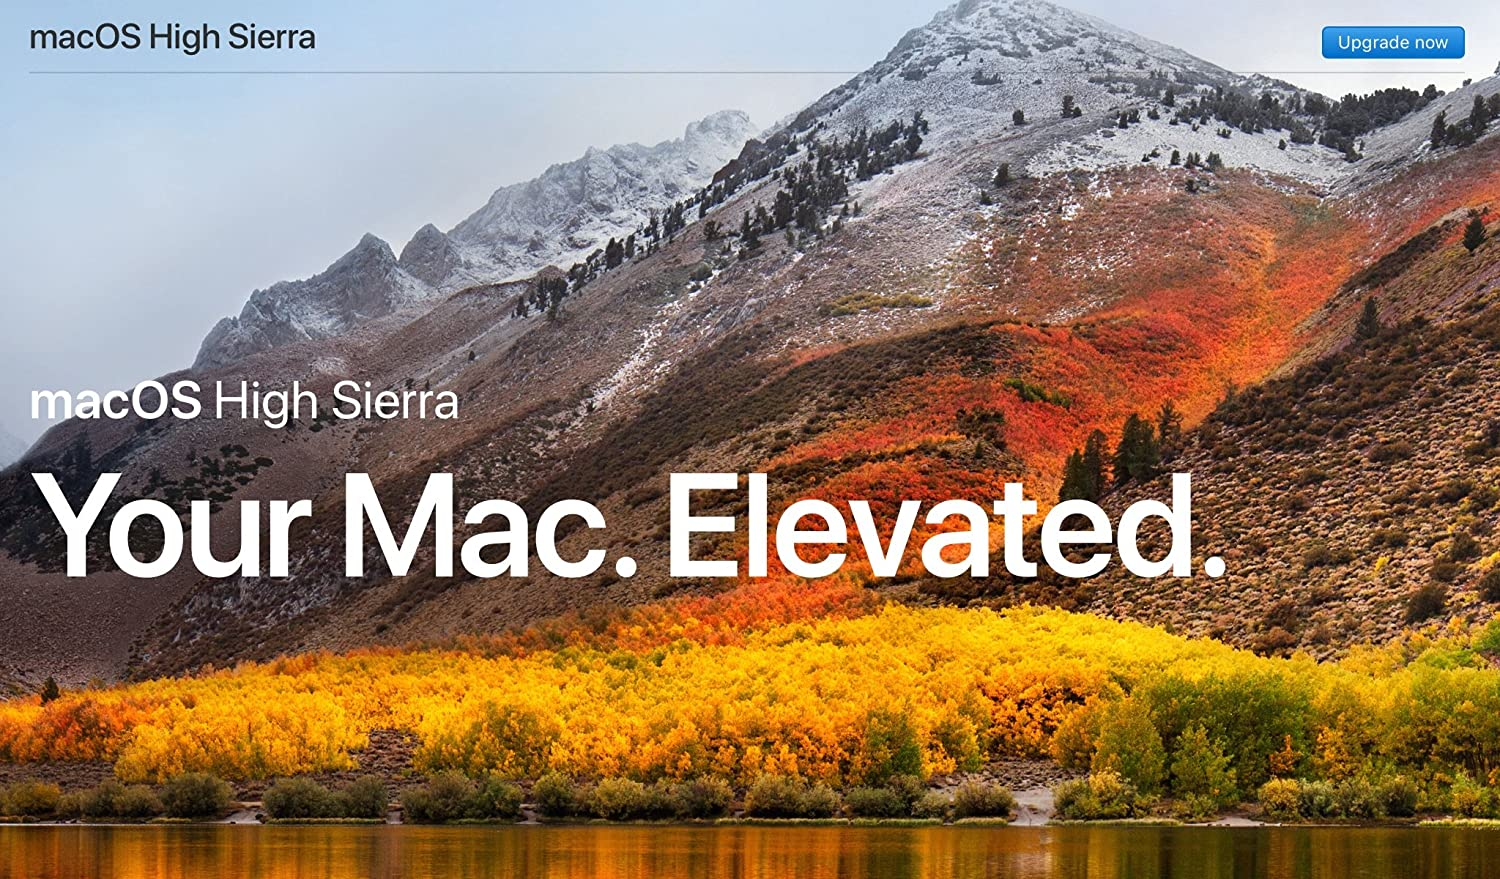 MacOS Mac OS X 10 13 High Sierra USB Drive Full Install Installer Update  Upgrade Recover Restore Backup